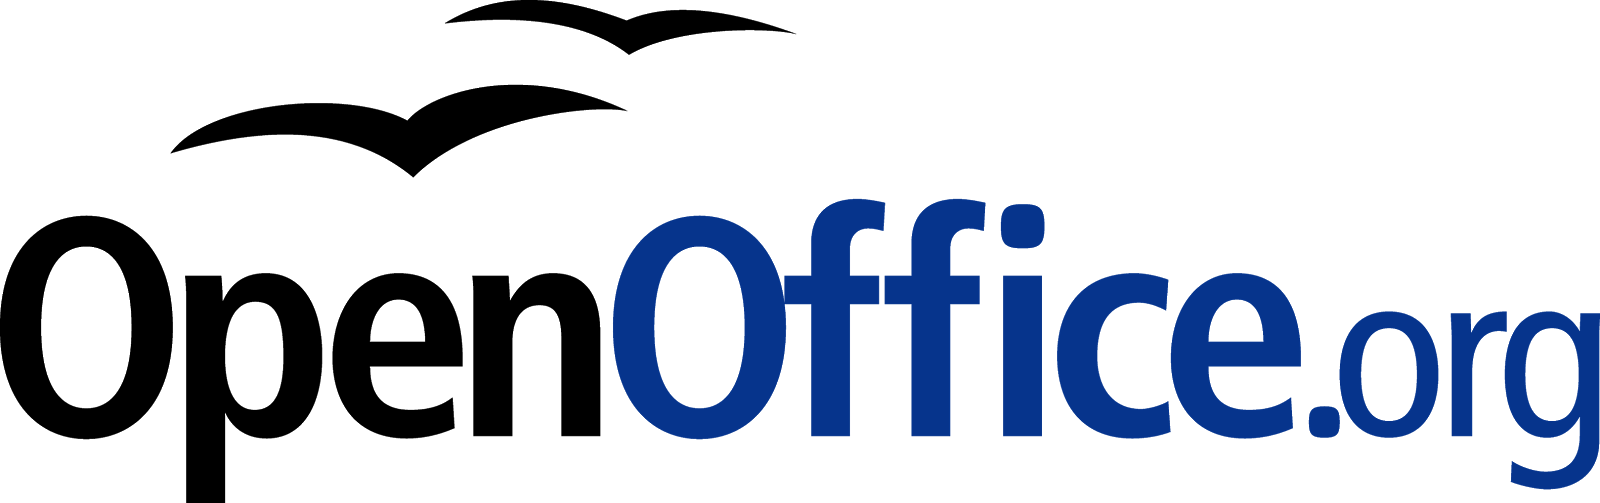 Download OpenOffice.org 4.1.0 Beta 1 New Full